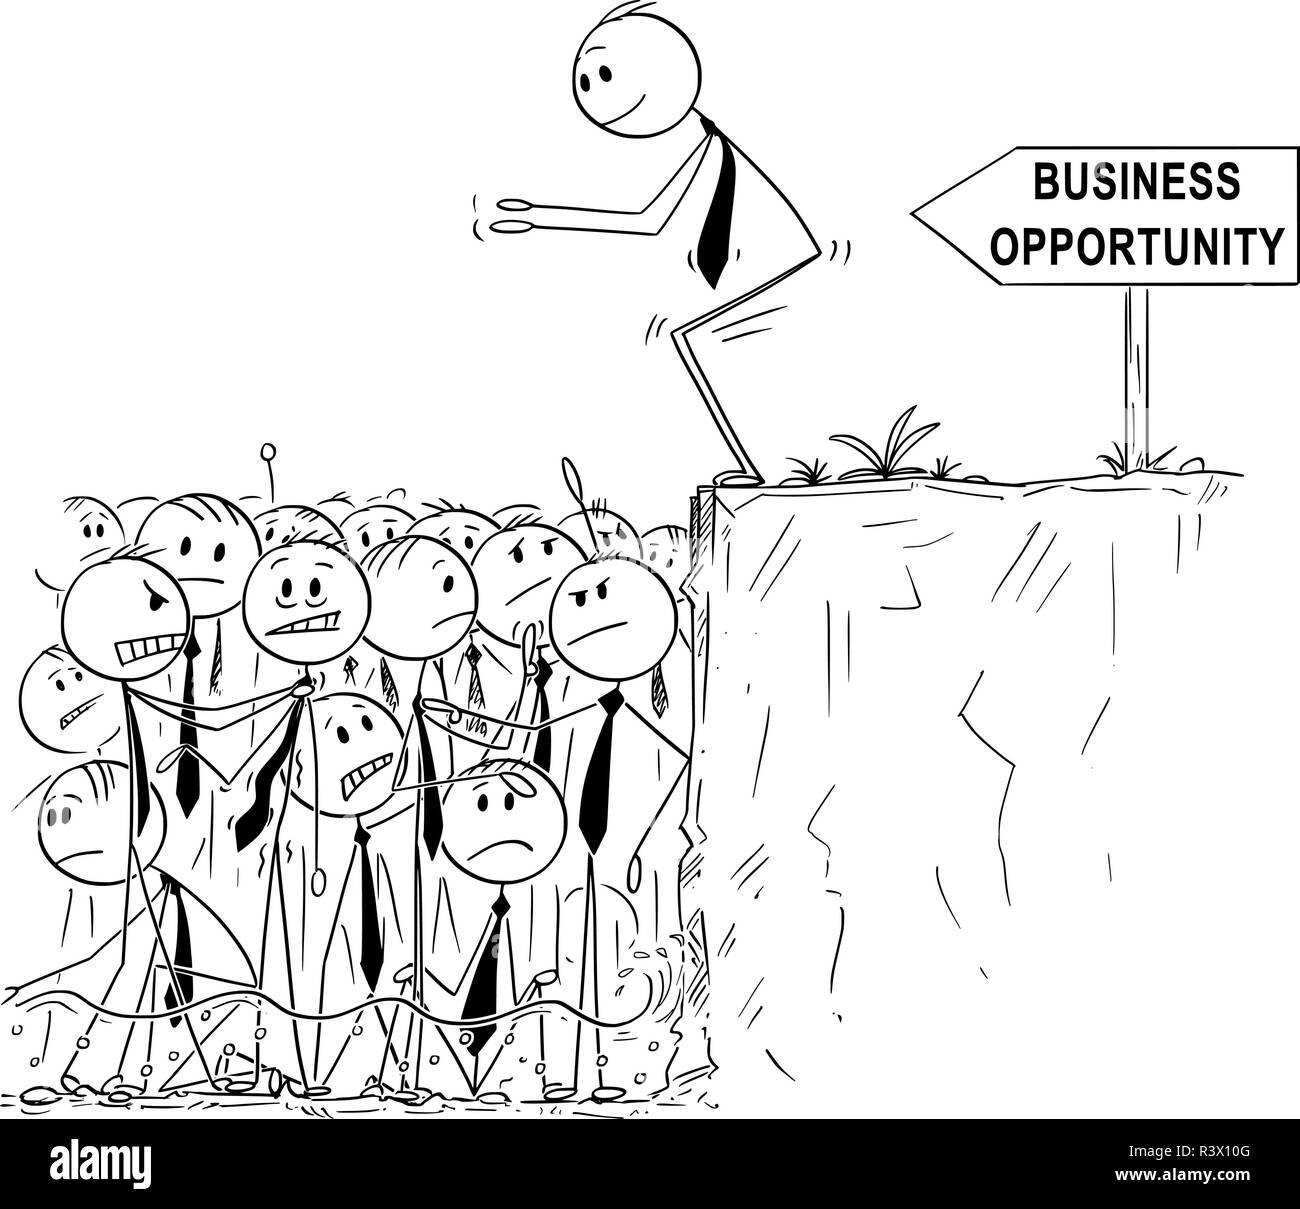 Cartoon of Businessman Looking for Business Opportunity is Ready to Jump in Shallow Water of Saturated or Oversaturated Market - Stock Image